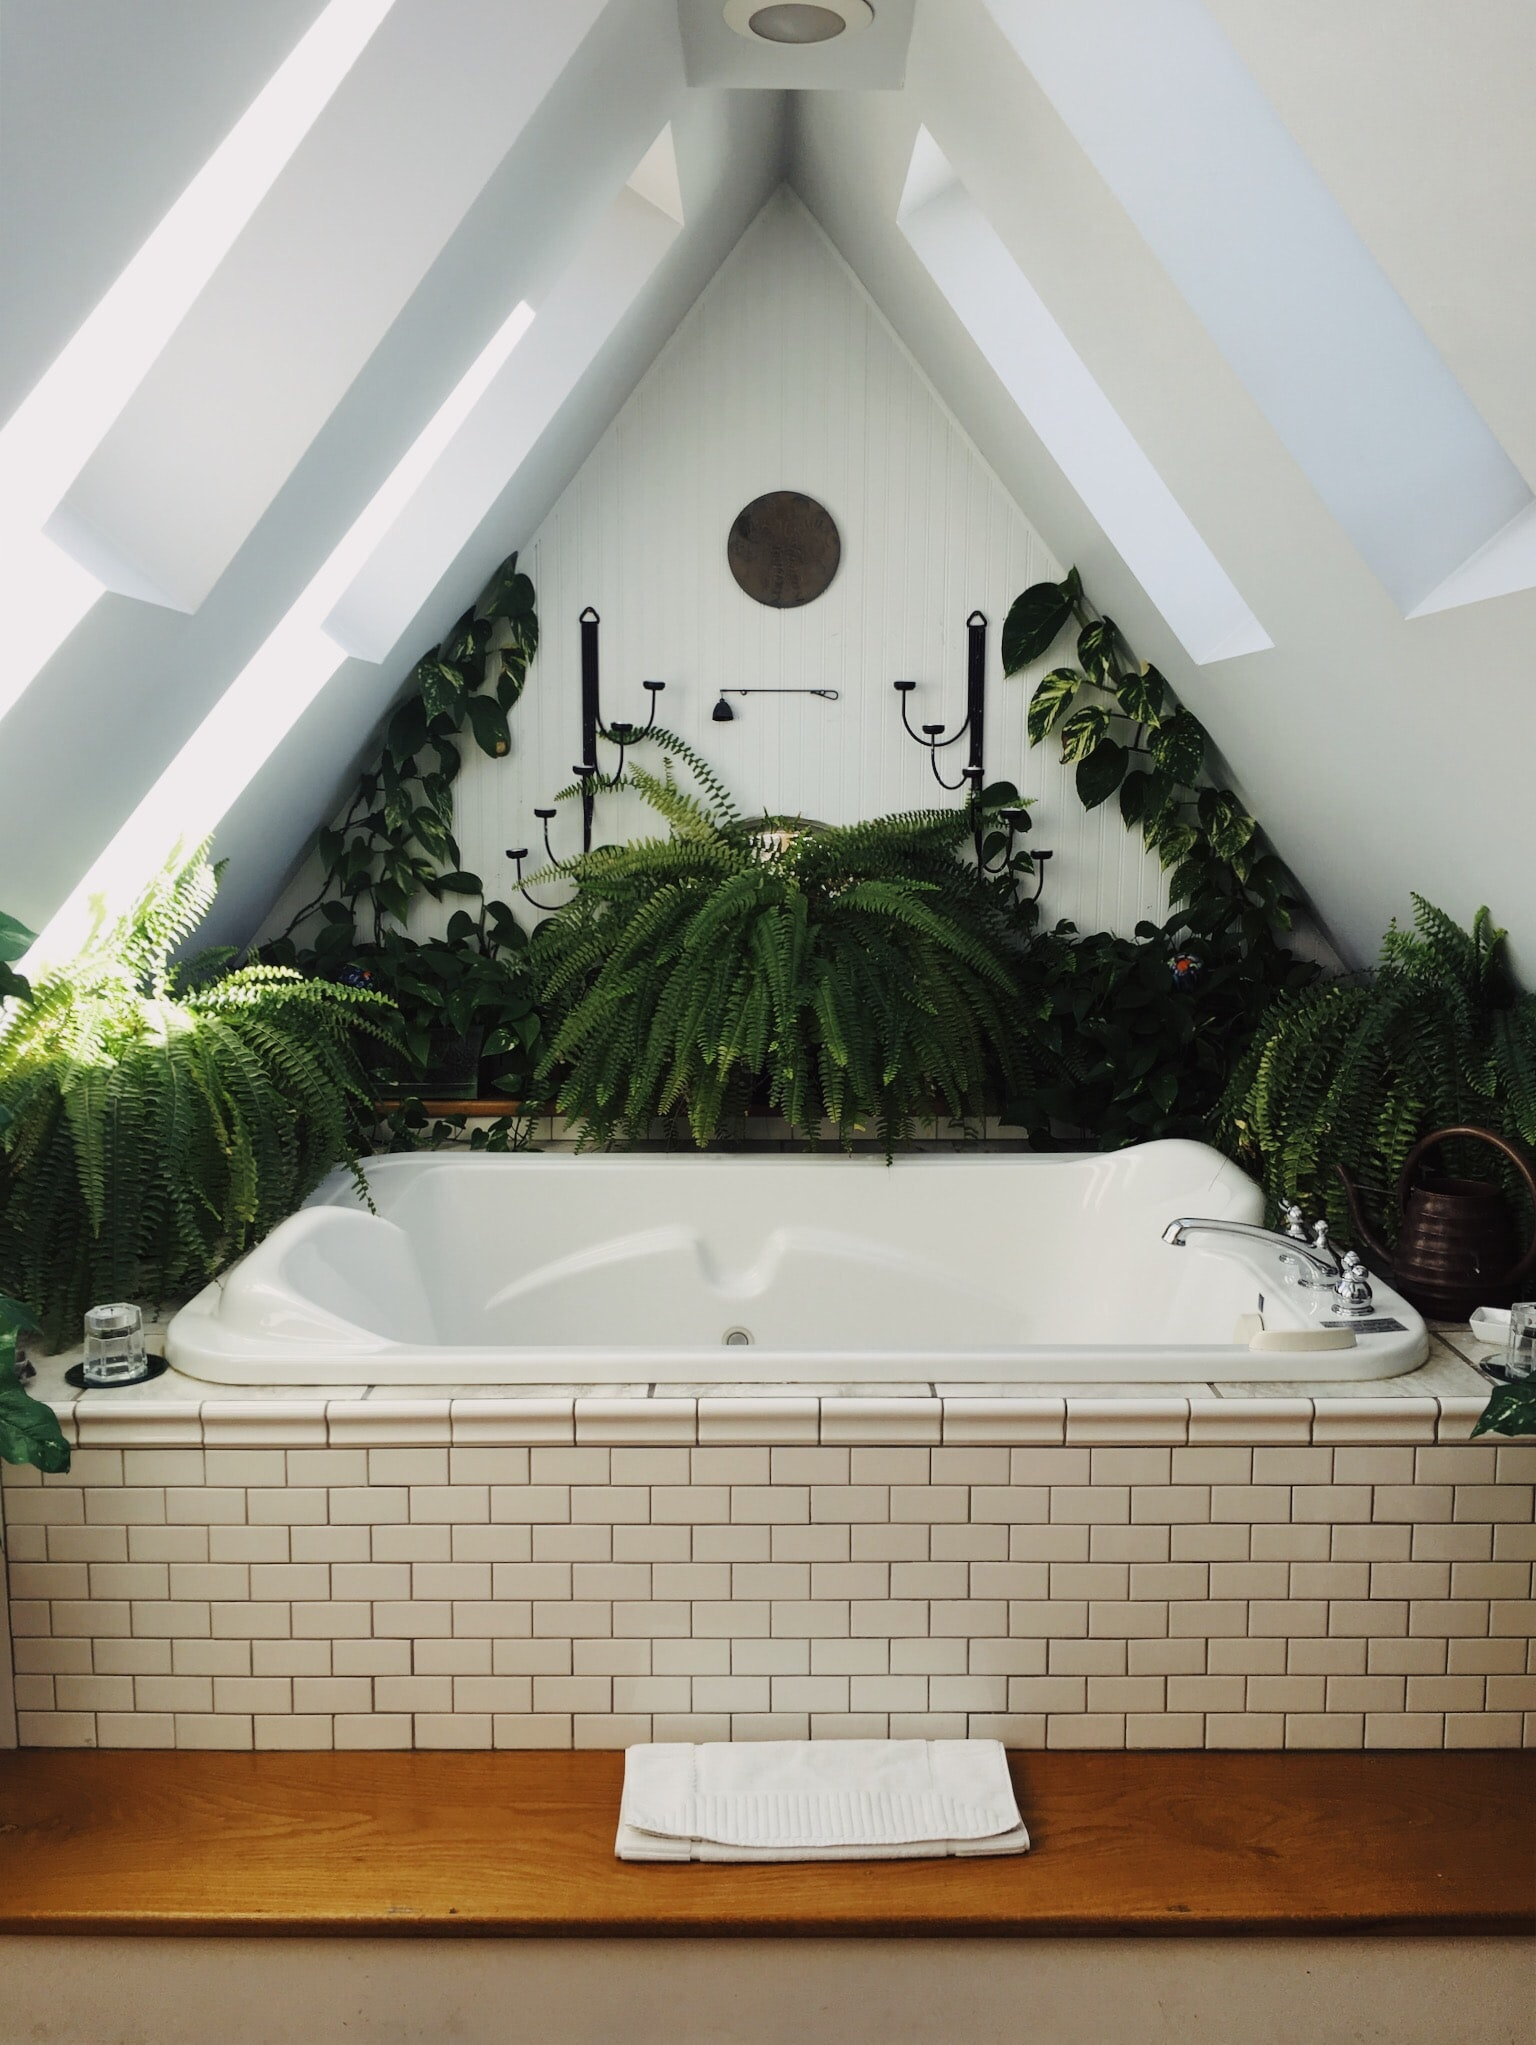 Remodeling The Bathroom Here's What You Need To Know